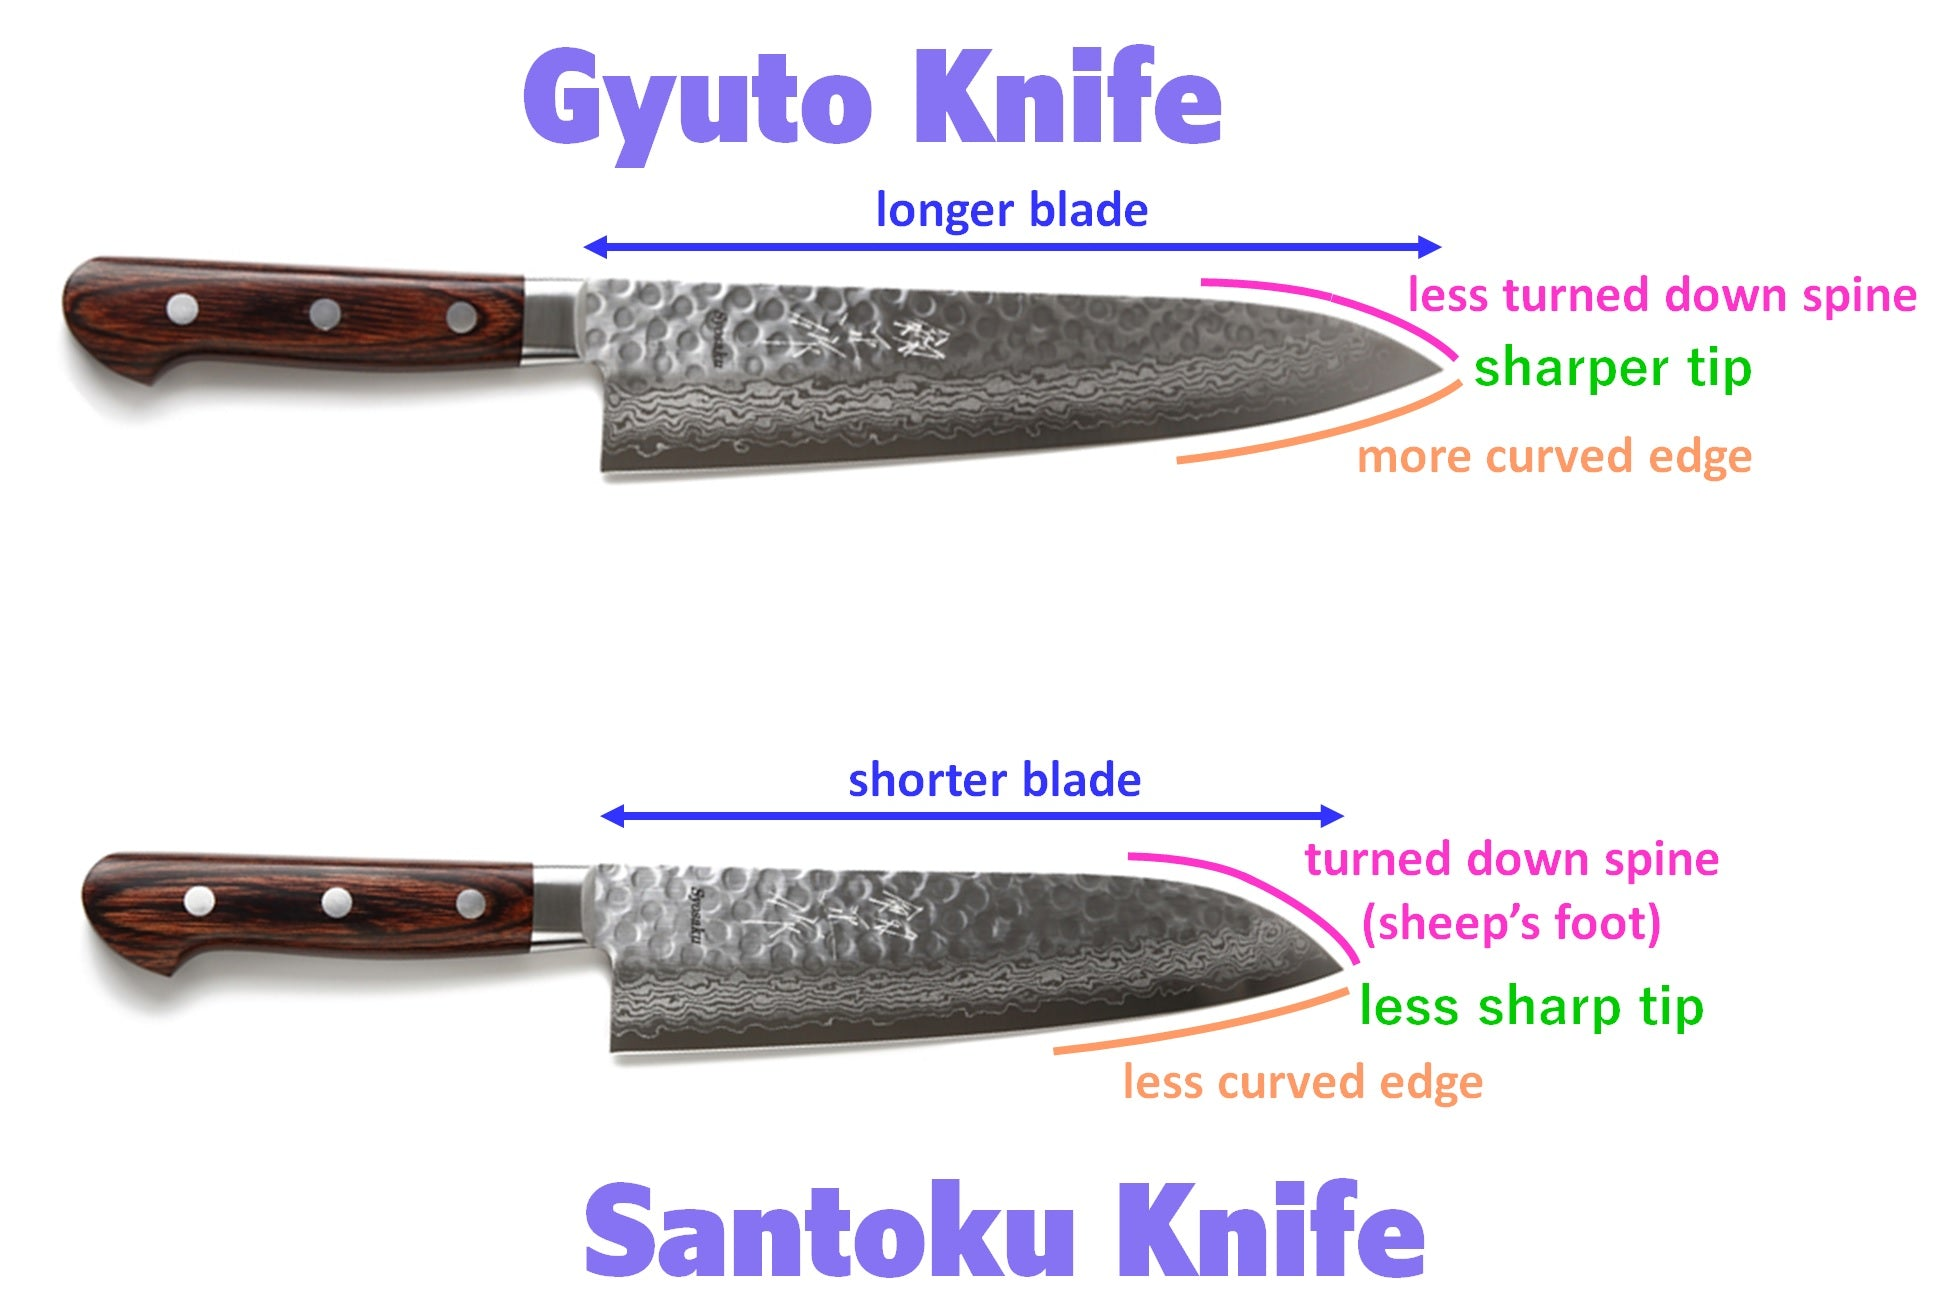 Shape of Gyuto and Santoku